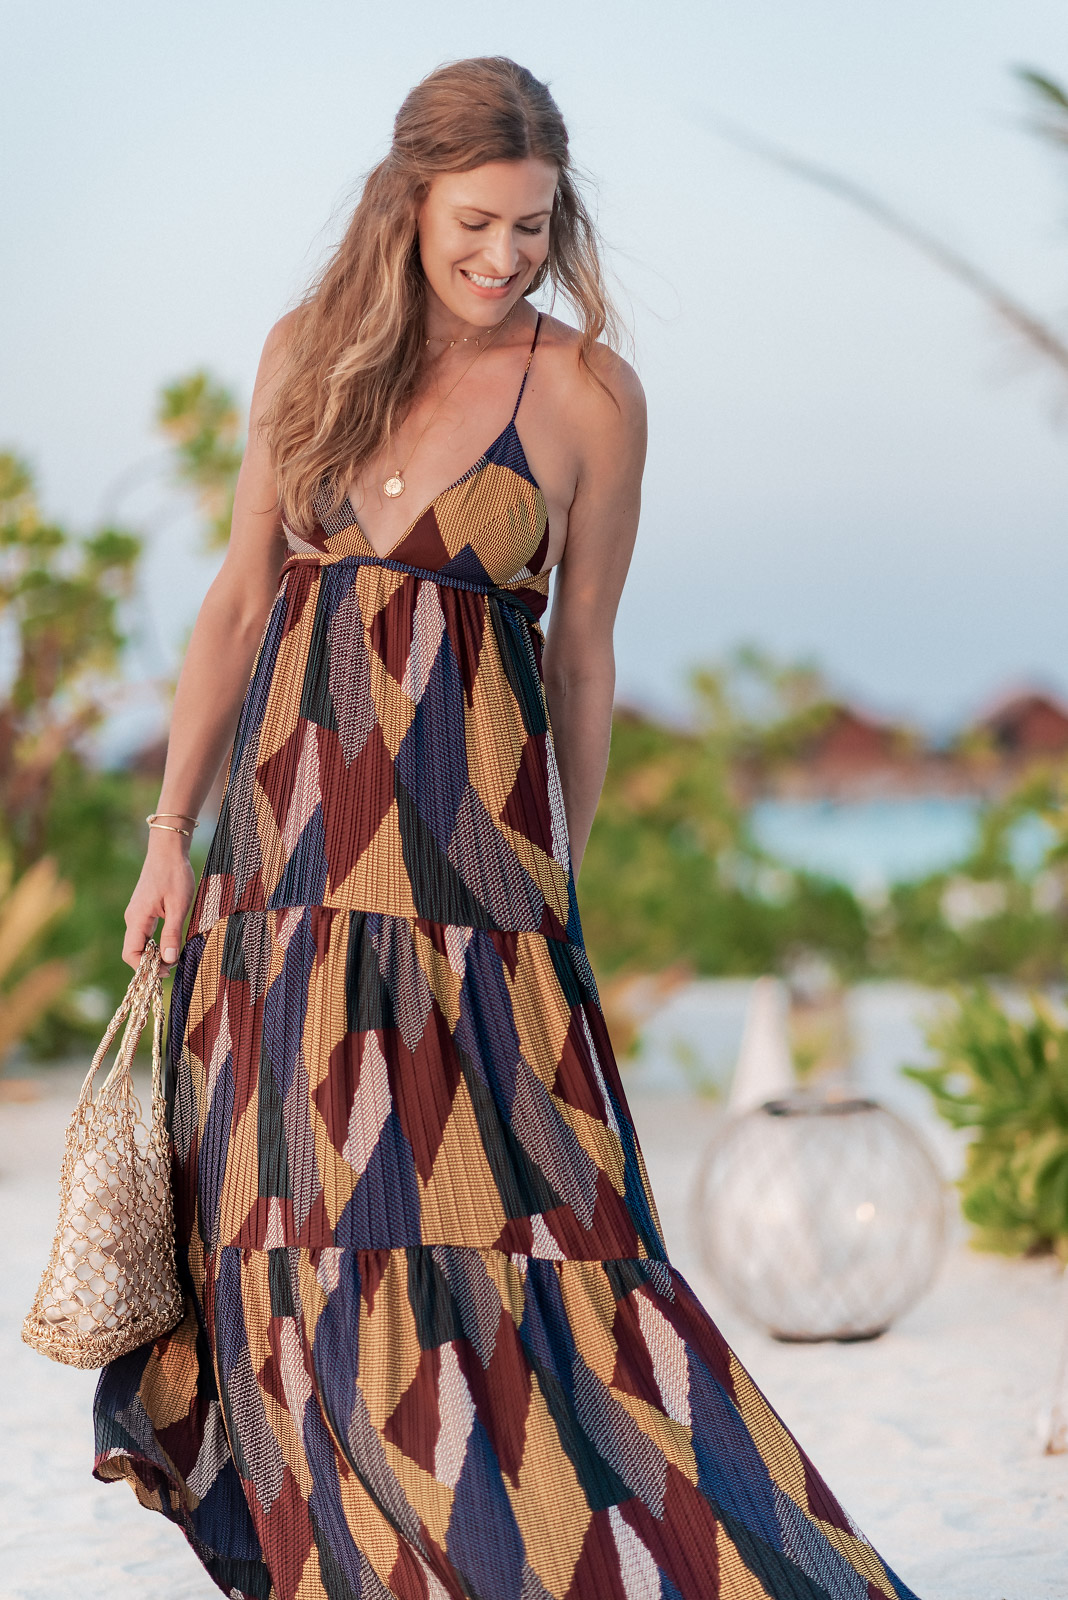 Laura Behnke The Life Actually Company the Maldives BA&SH Dress